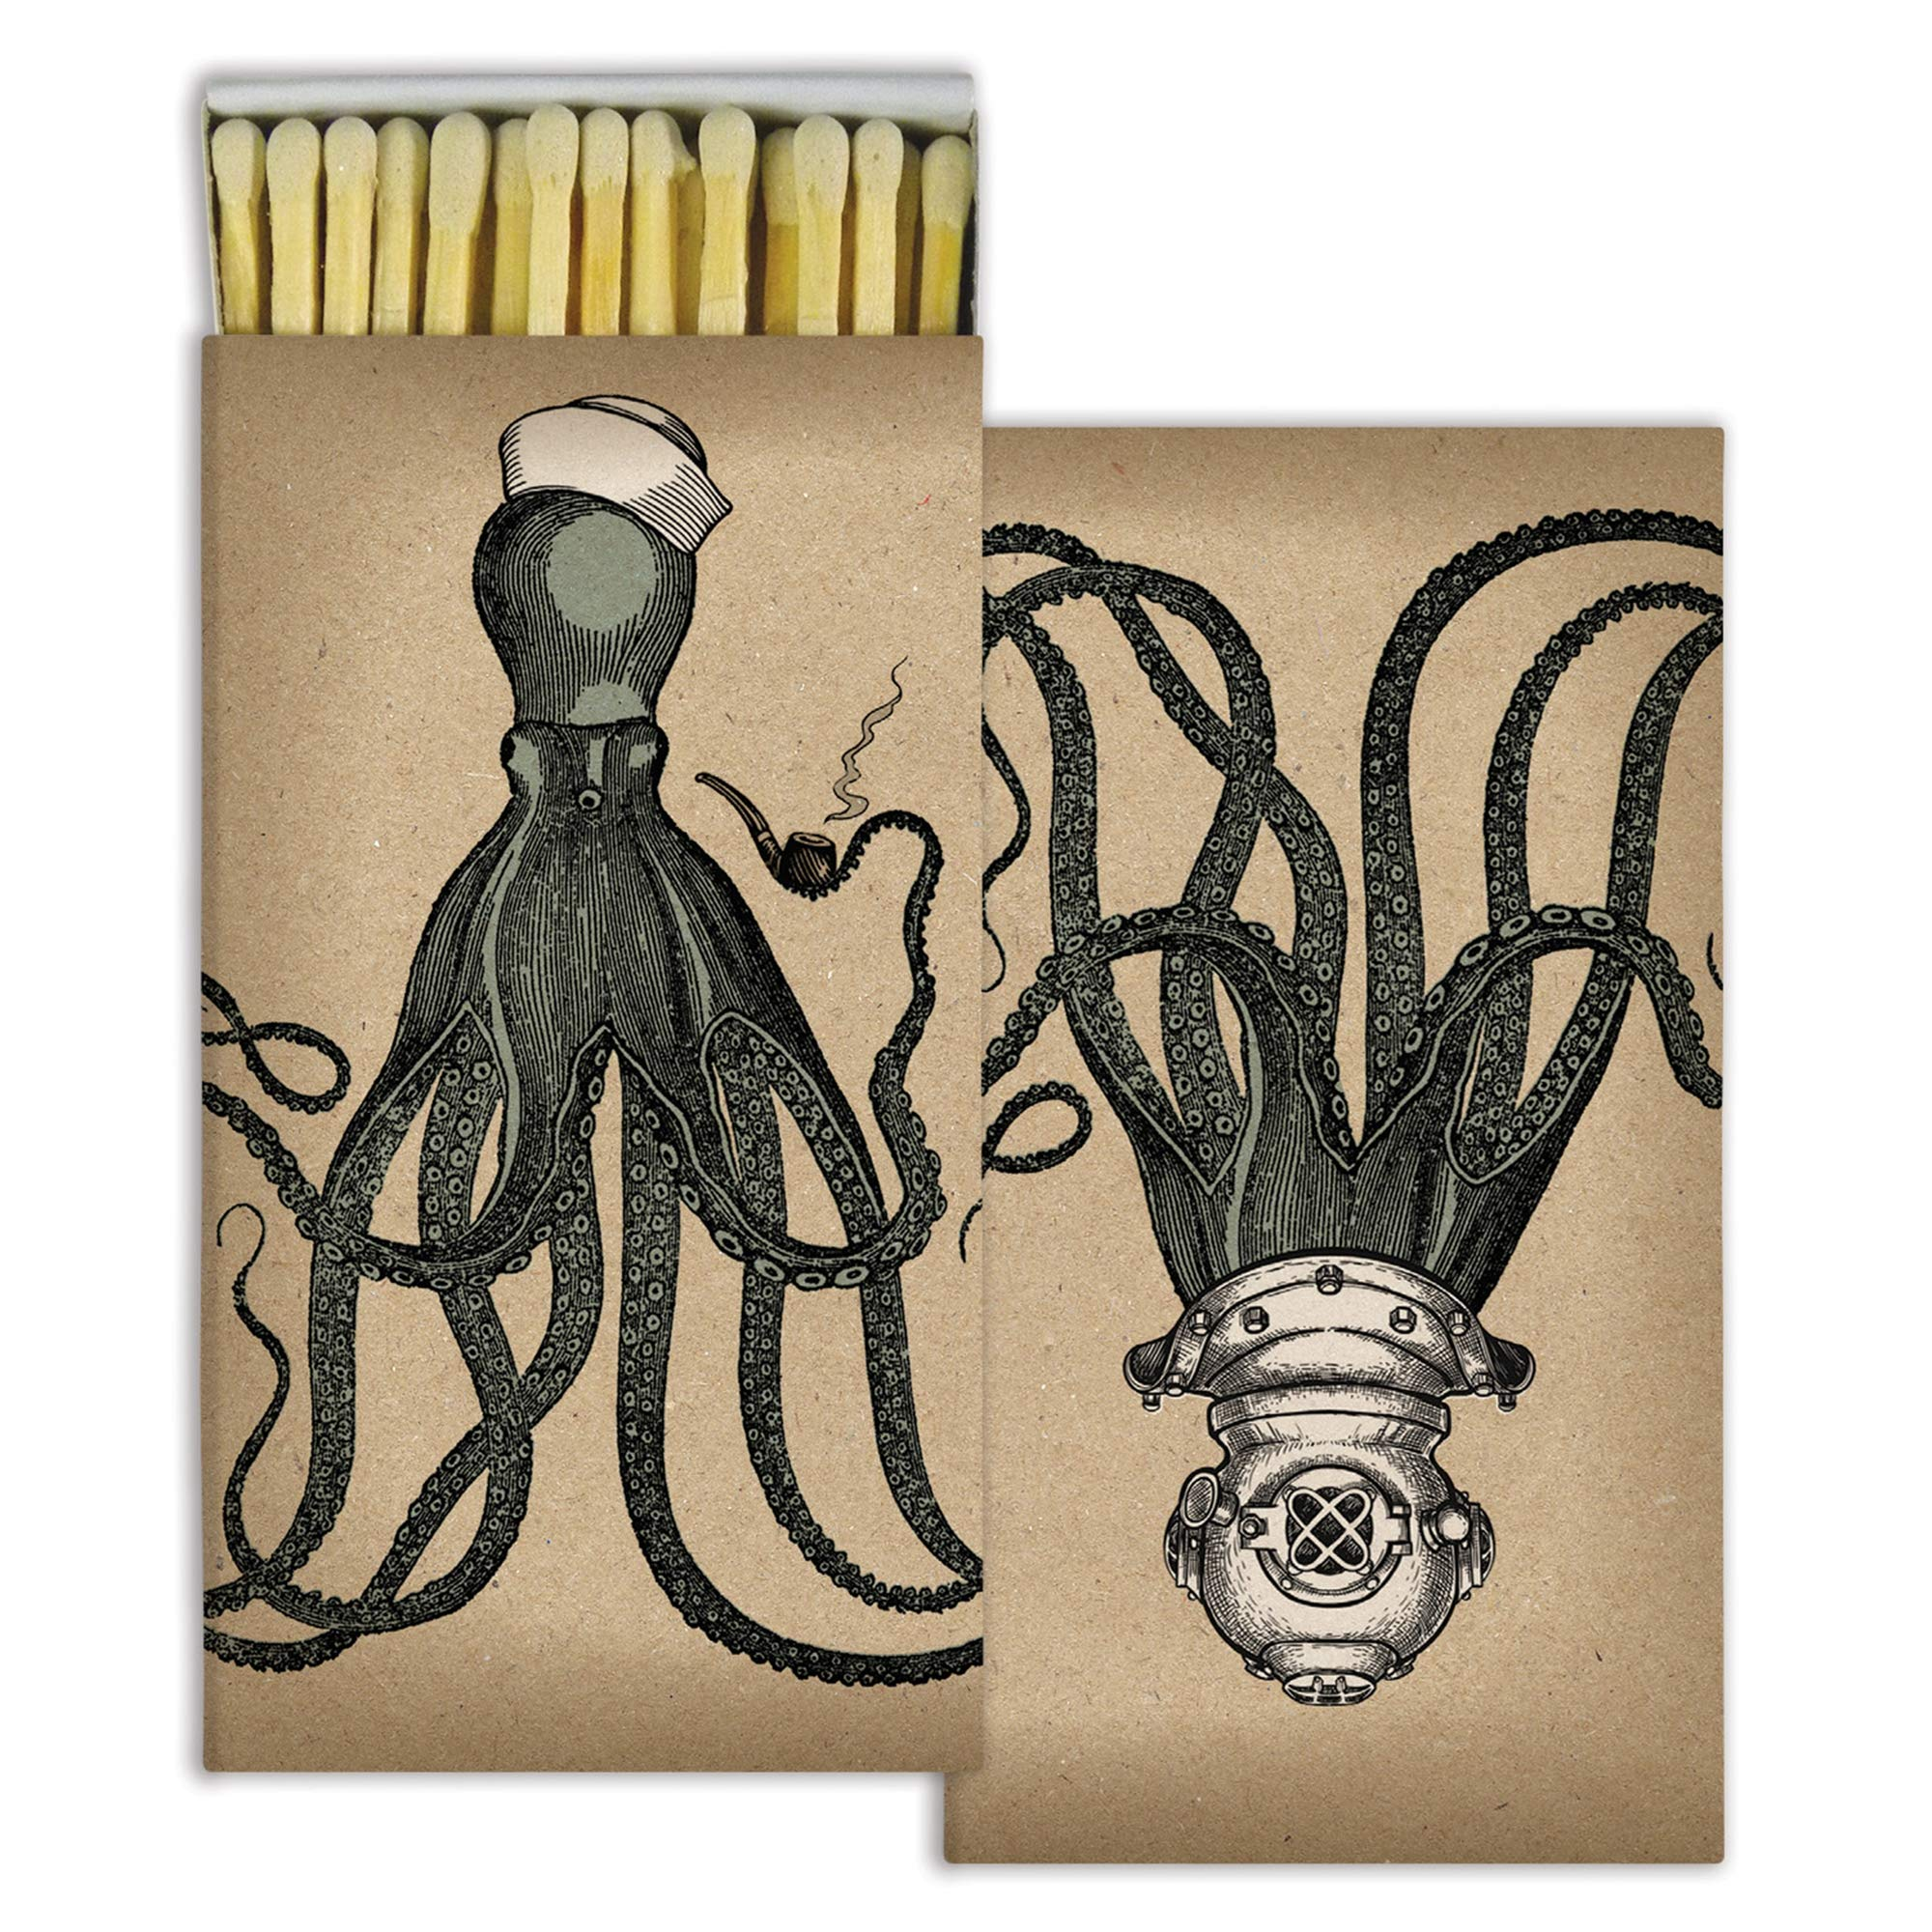 Decorative Octopus Match Boxes with Long Kitchen Matches Great for Lighting Candles, Grills, Fireplaces and More | Set of 10 Match Boxes